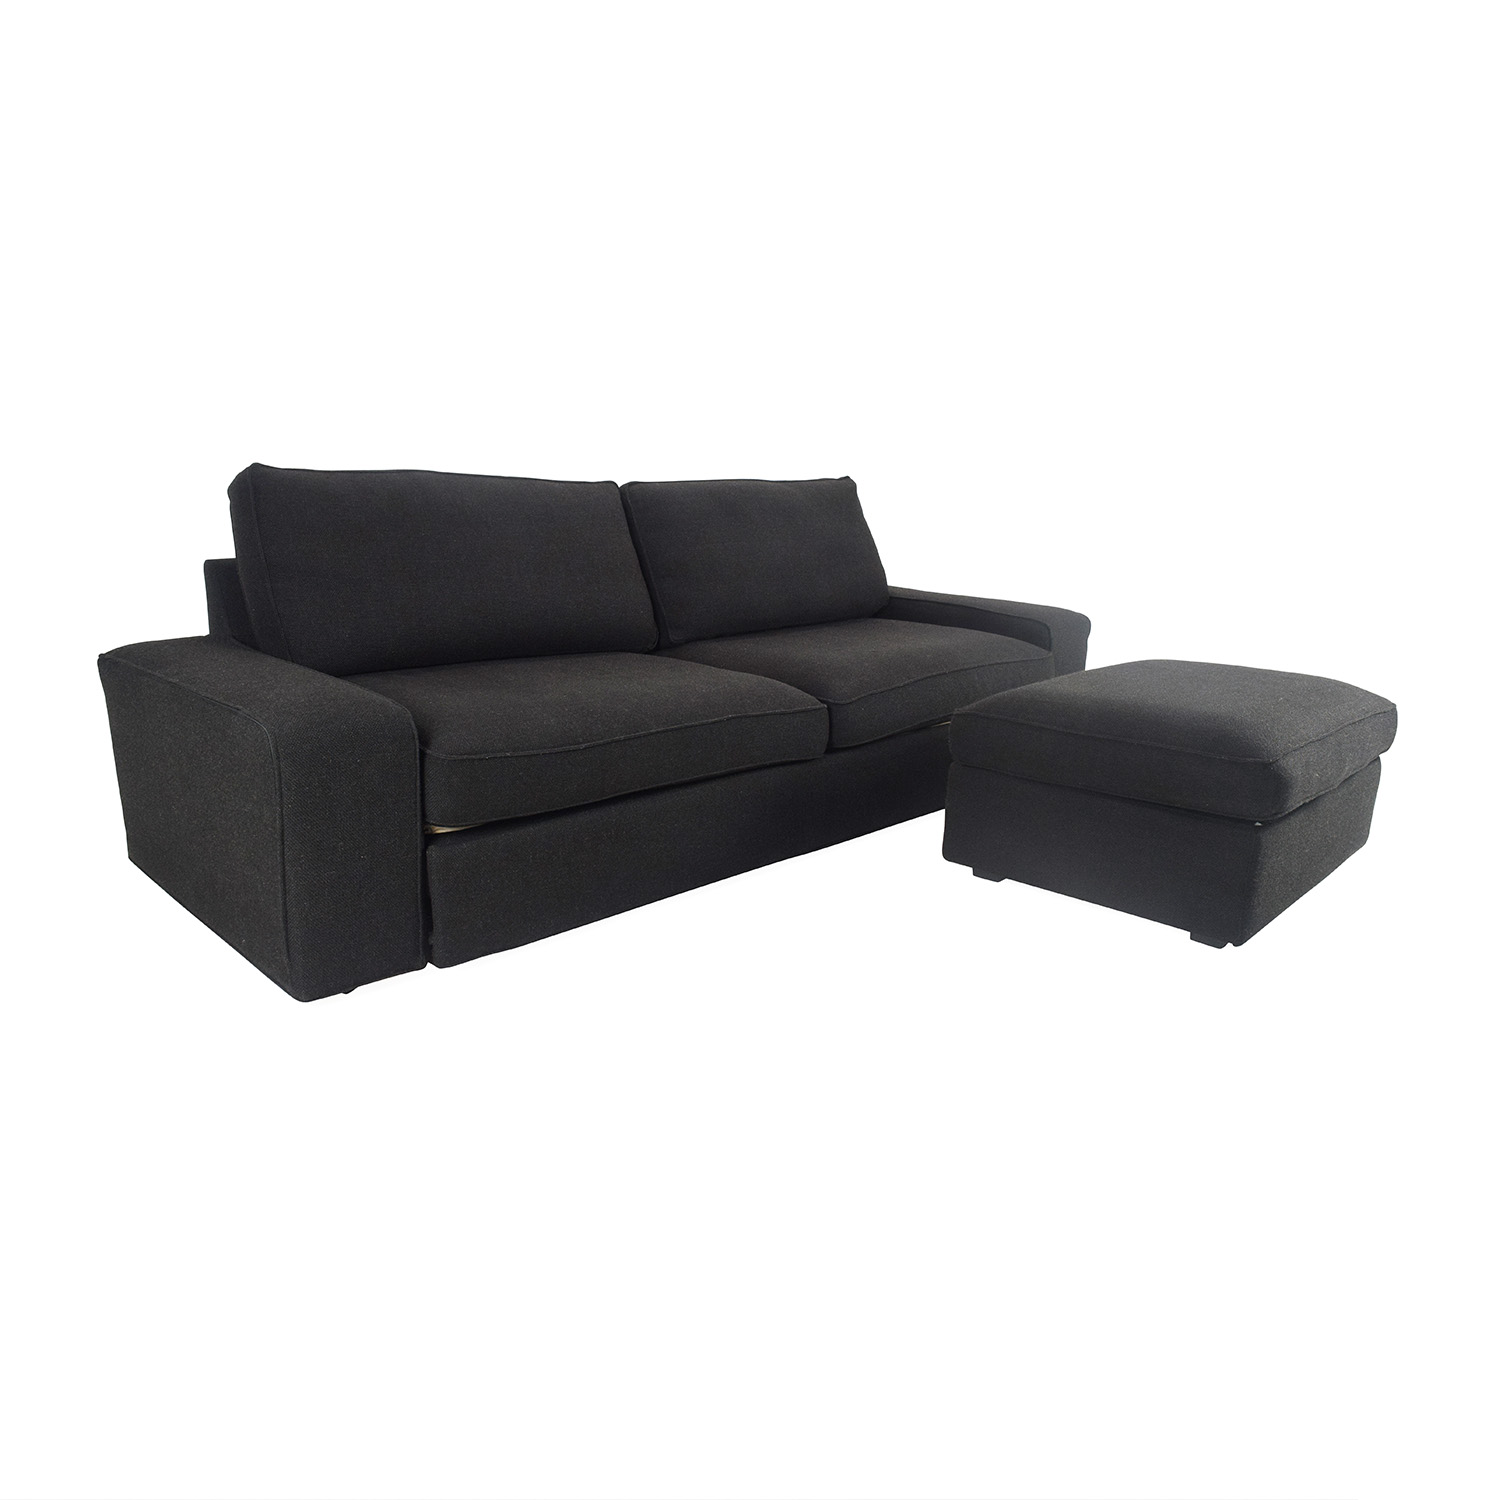 81 off ikea ikea oversized sofa and ottoman sofas for Couch und sofa